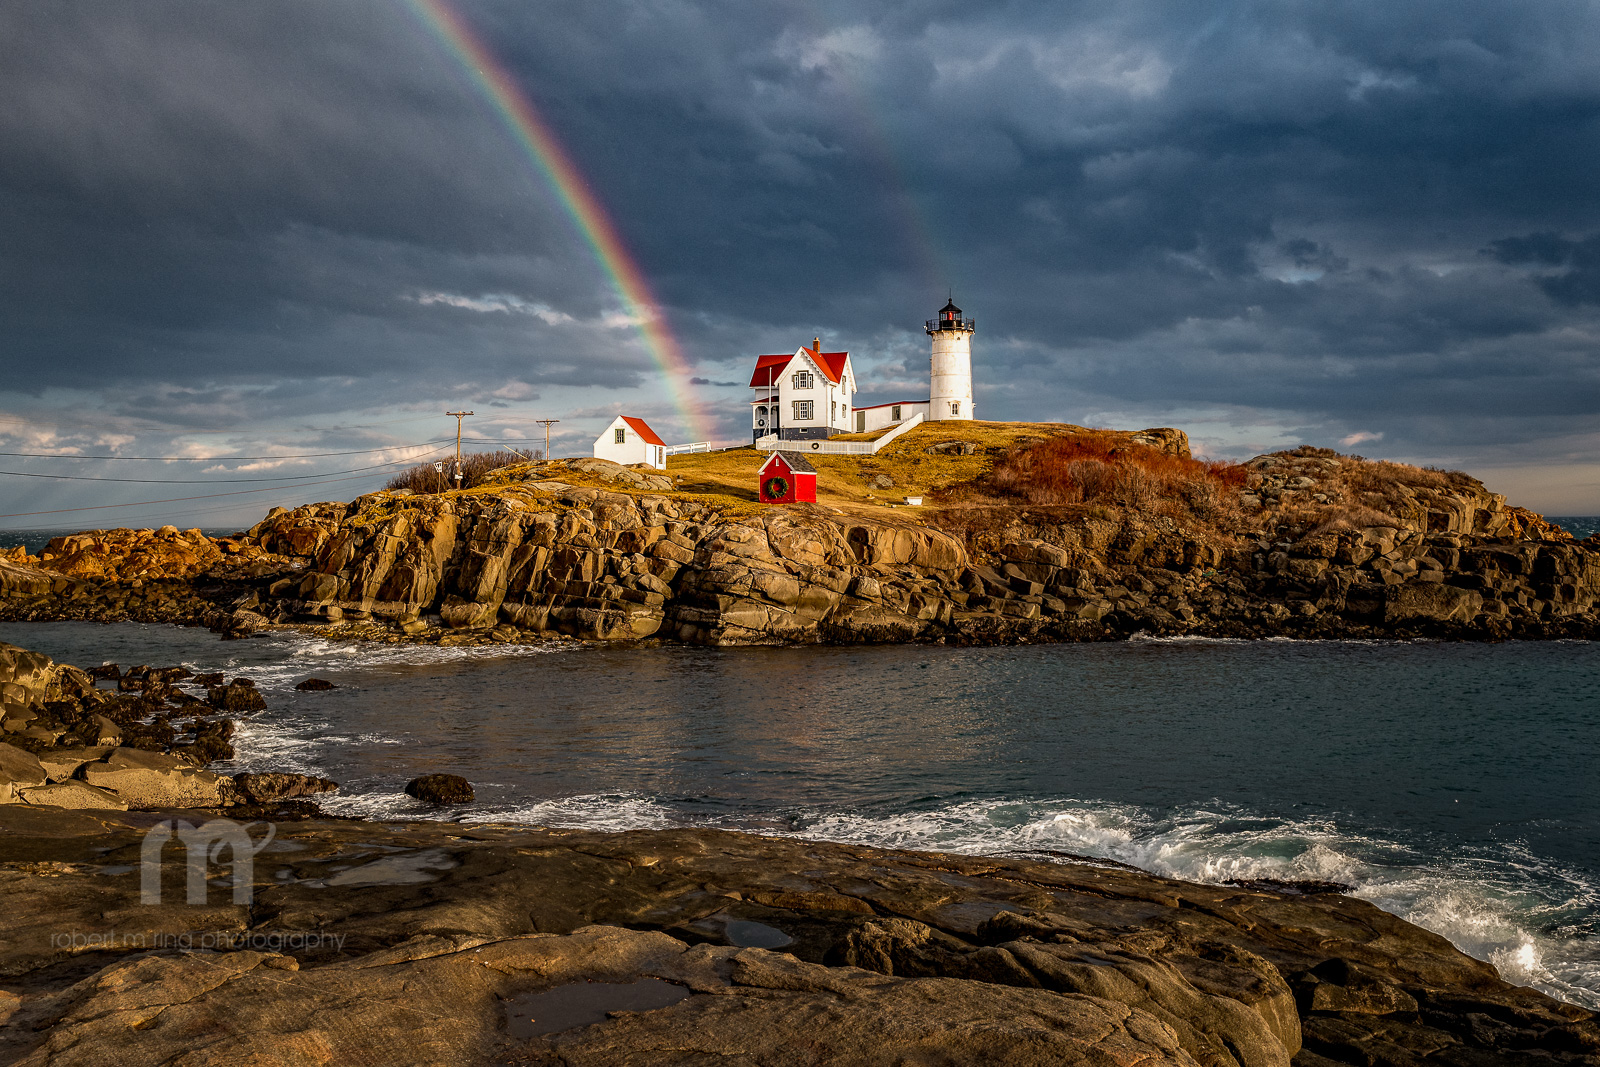 Maine, Nubble Light,Maine coast, New England, Lighthouse, Rainbow,Rainbows, photo